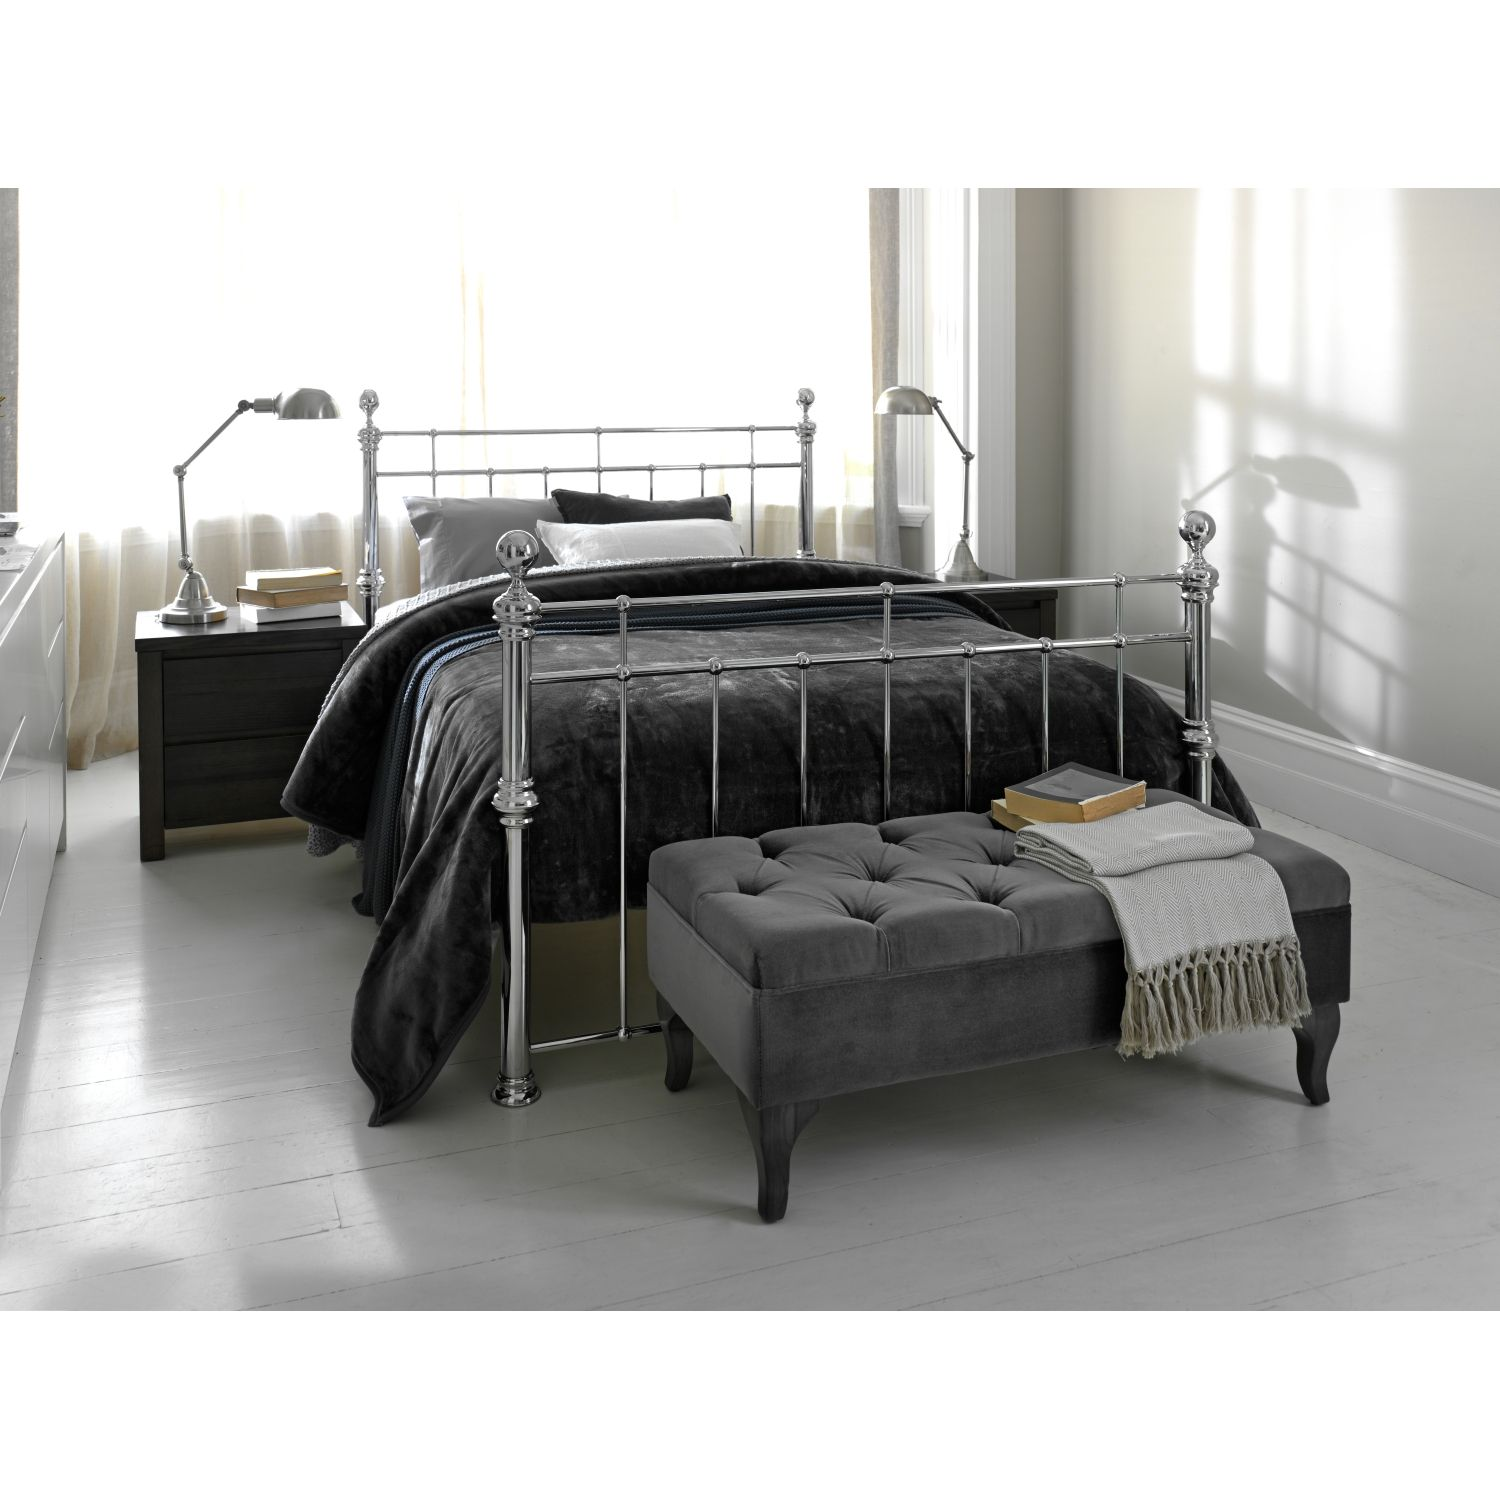 Waldorf Bed Frame | Domayne Online Store | Ticked | Pinterest | Bed ...